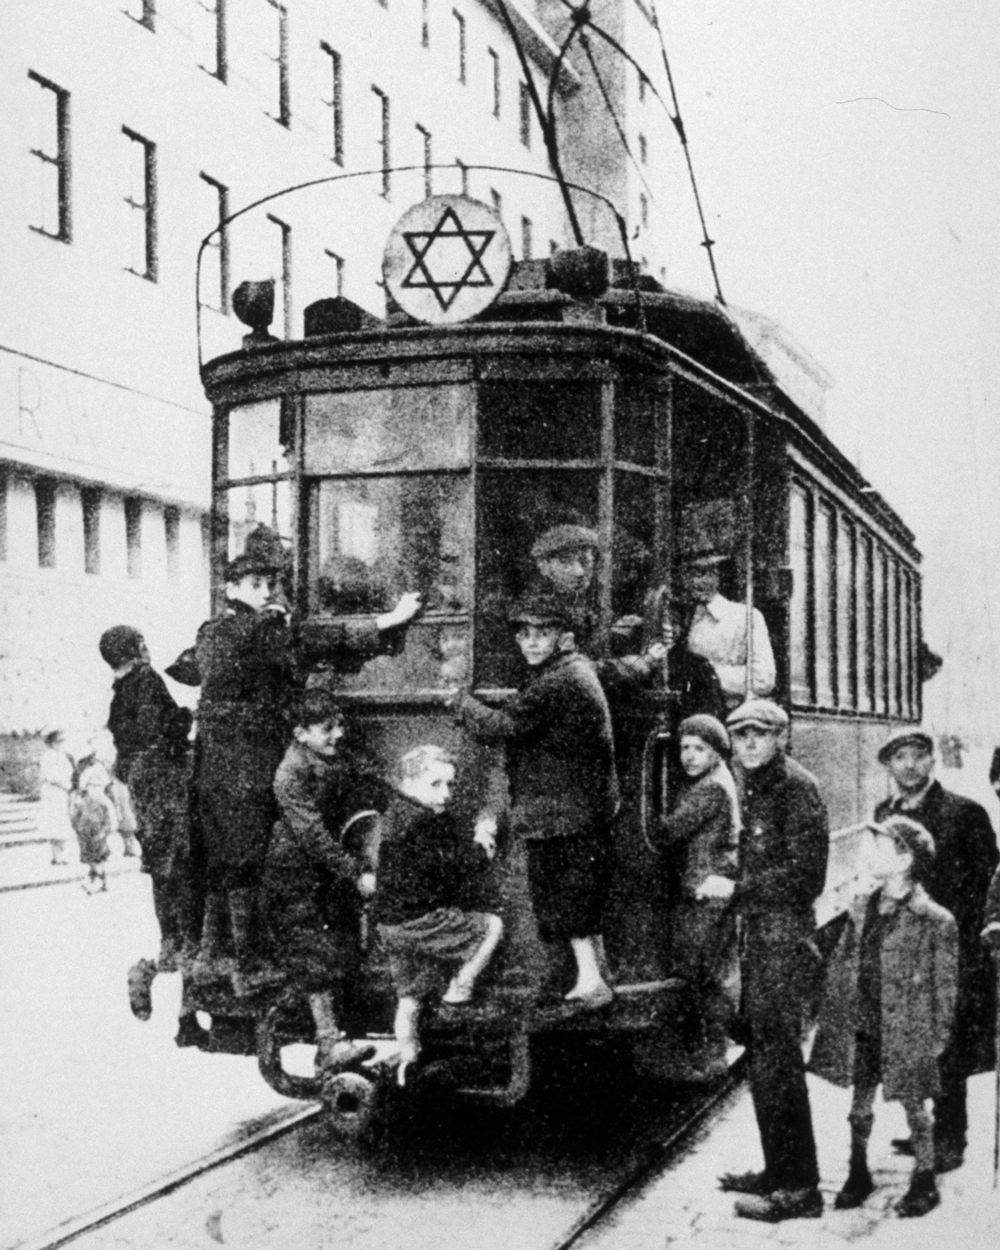 Rabbi Kalonymus Kalmish Shapira, the Piaseczno Rebbe, exhorted Jews to remain observant even in the harsh conditions of the ghetto. Jewish children grab a tram-ride in the Warsaw ghetto, 1940